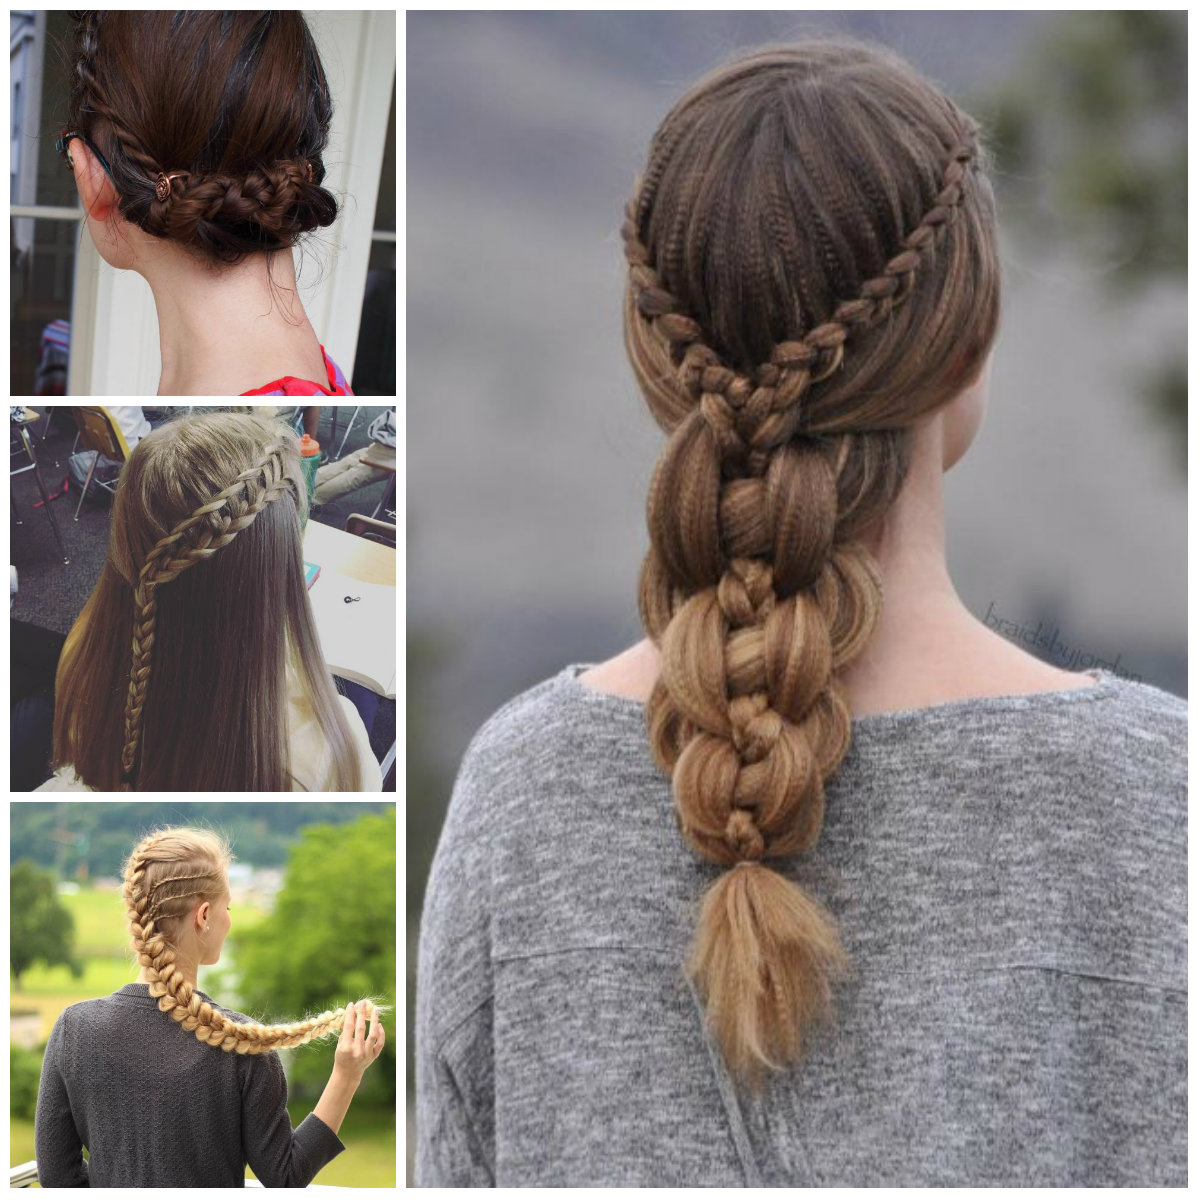 Cute Lace Braids Hairstyles for Girls